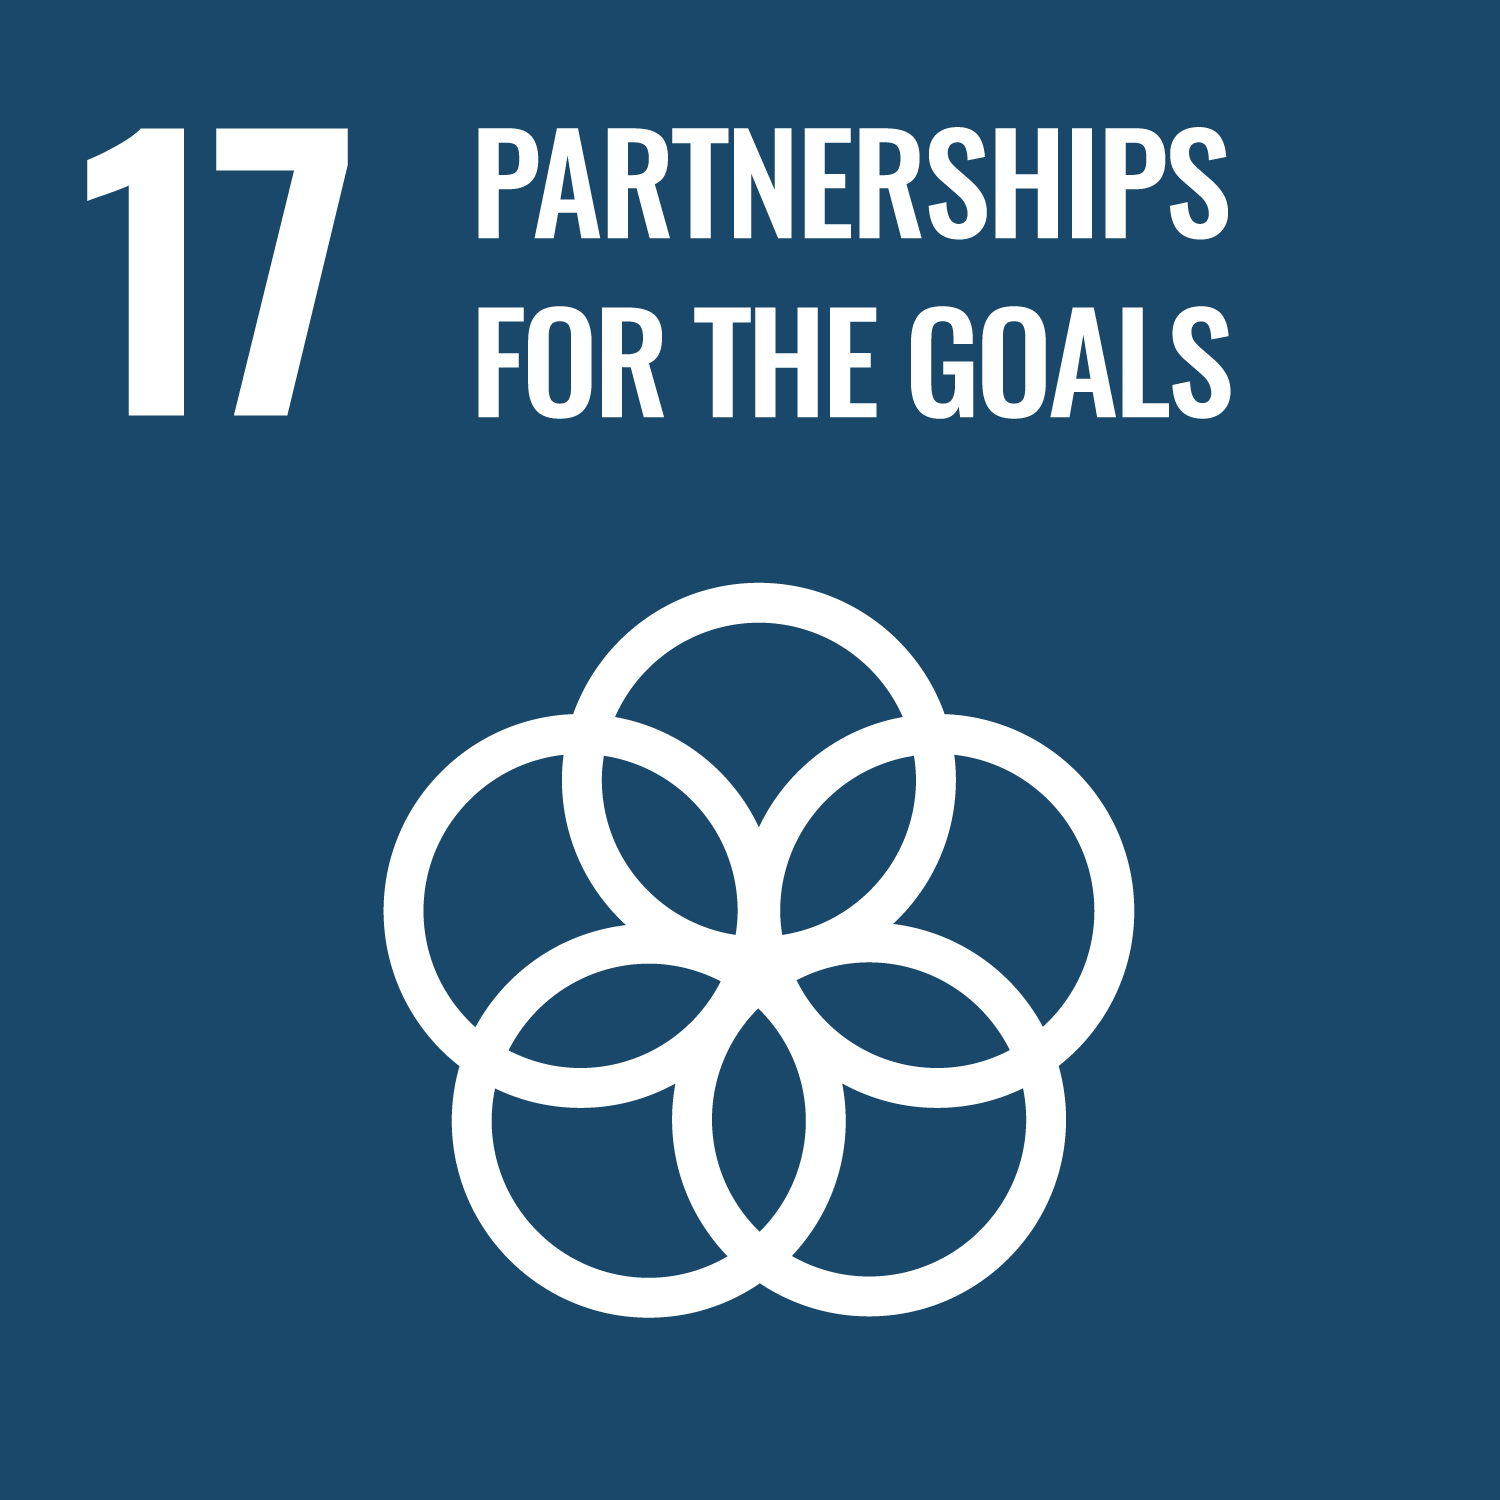 UN Sustainable Development Goal 17: Partnerships for the Goals